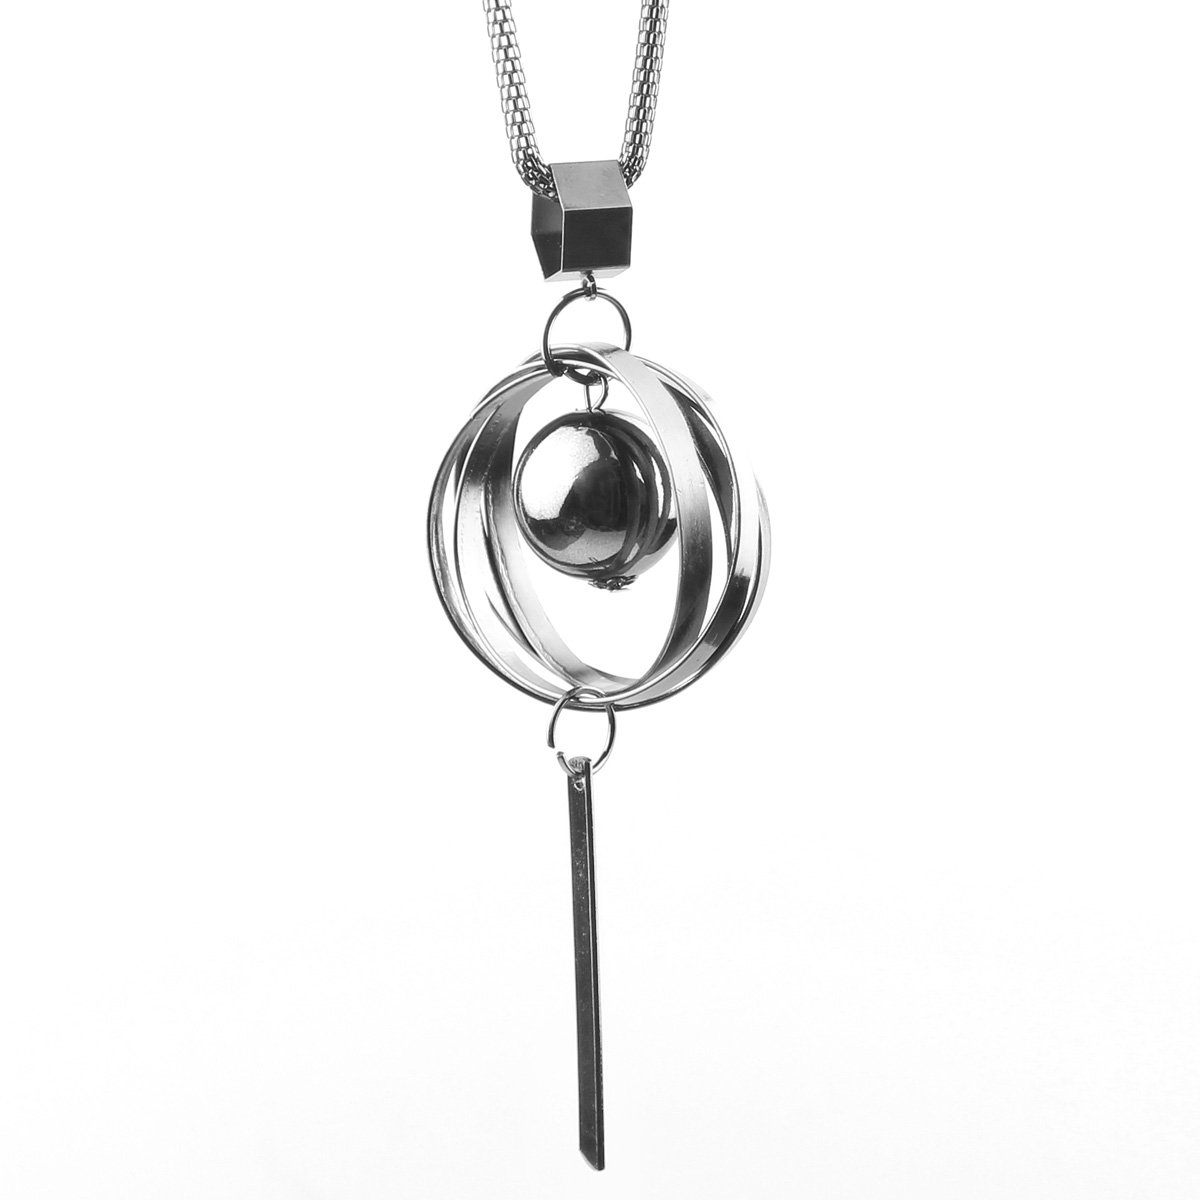 Gexo Solid Long Sweater Necklace for Women Sliver Triple Stack Pendant Necklace Elegant Statement Necklace